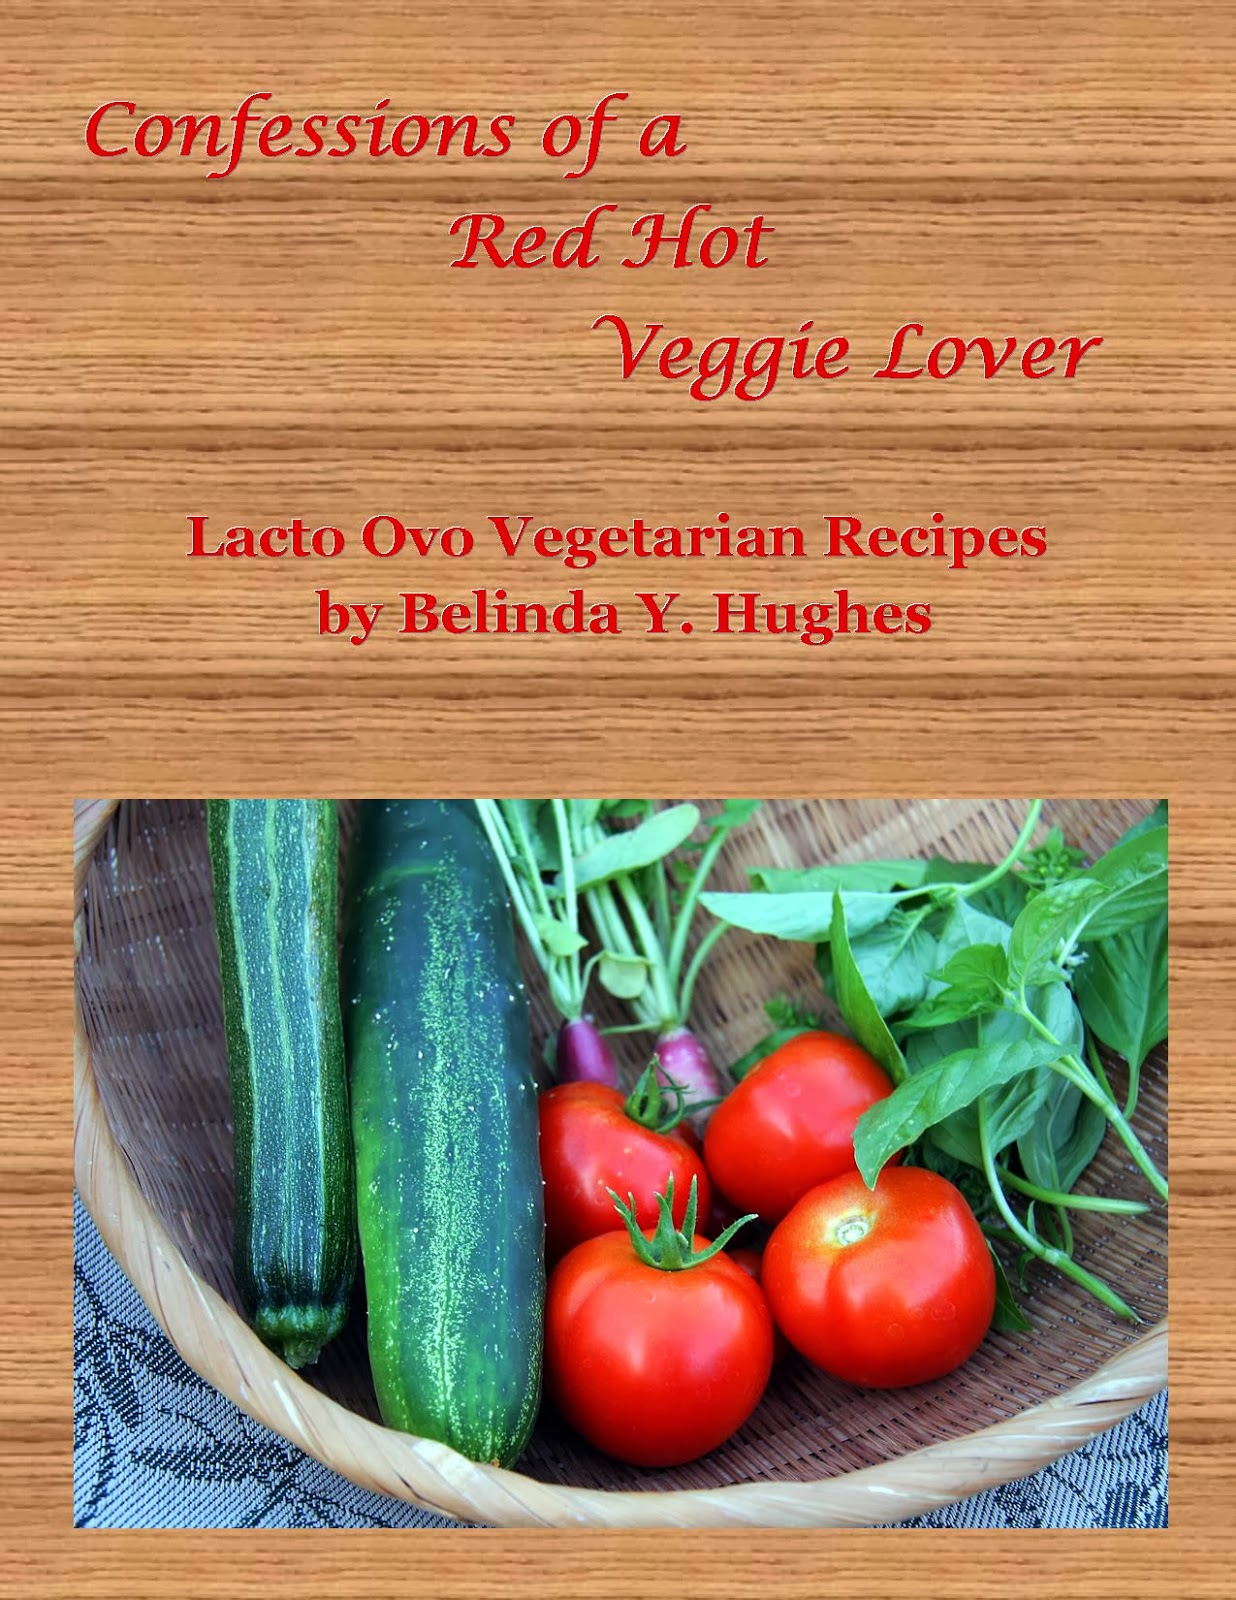 http://www.amazon.com/Confessions-Red-Hot-Veggie-Lover-ebook/dp/B00H4L35NM/ref=sr_1_1?s=digital-text&ie=UTF8&qid=1393011110&sr=1-1